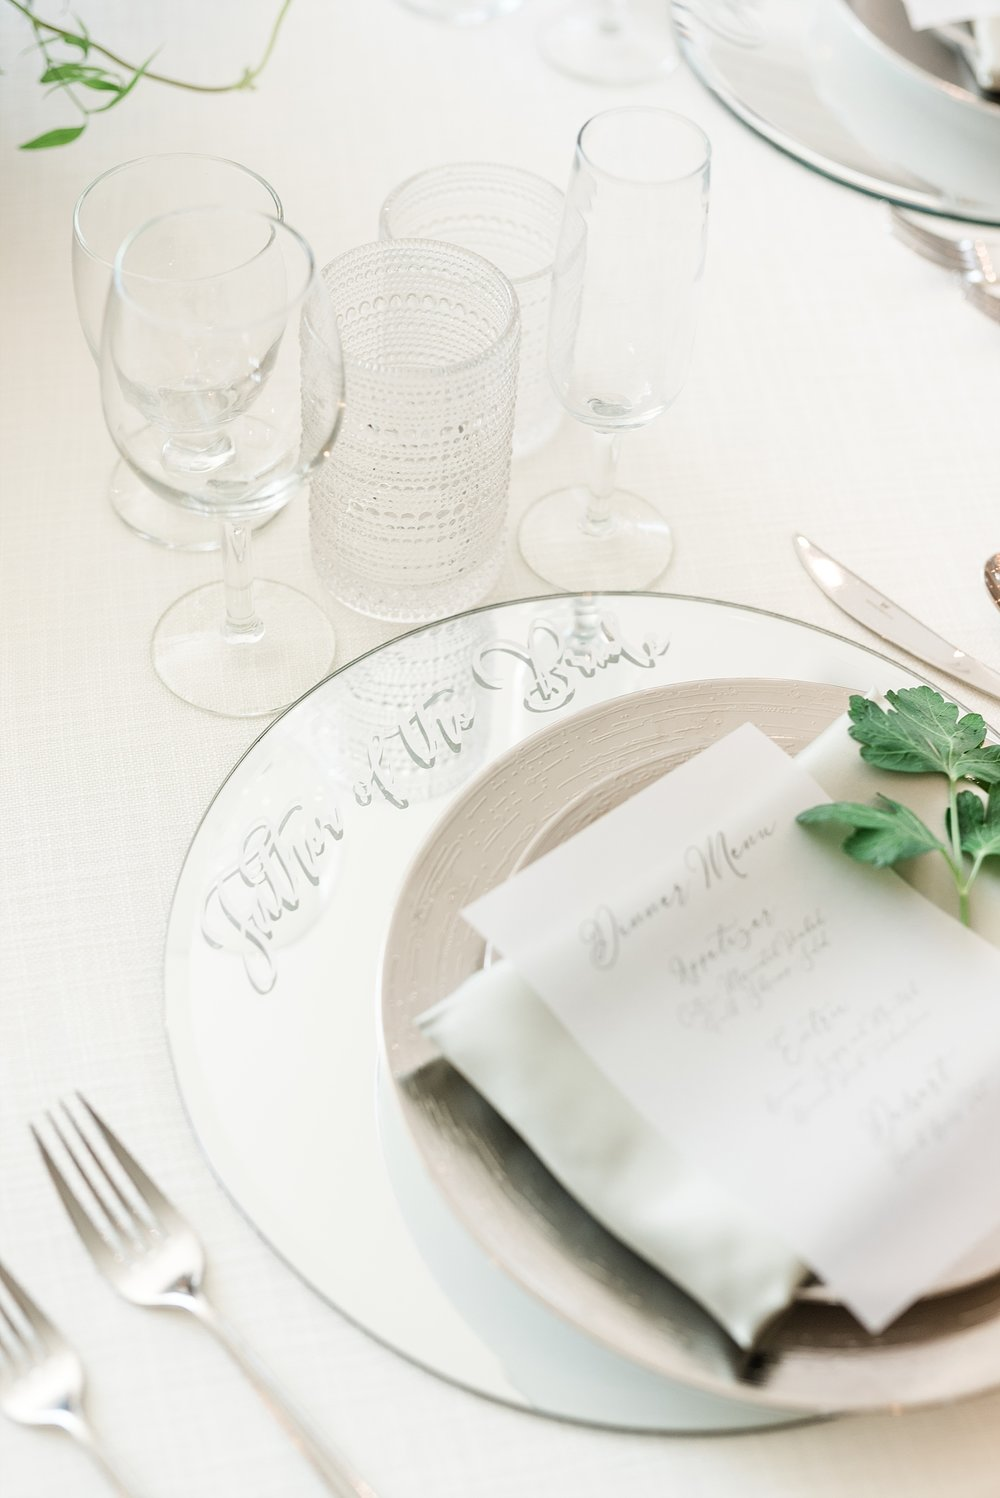 Textural Organic Wedding in All White Venue by Kelsi Kliethermes Wedding Photographer - Missouri, Midwest, and Destinations_0095.jpg